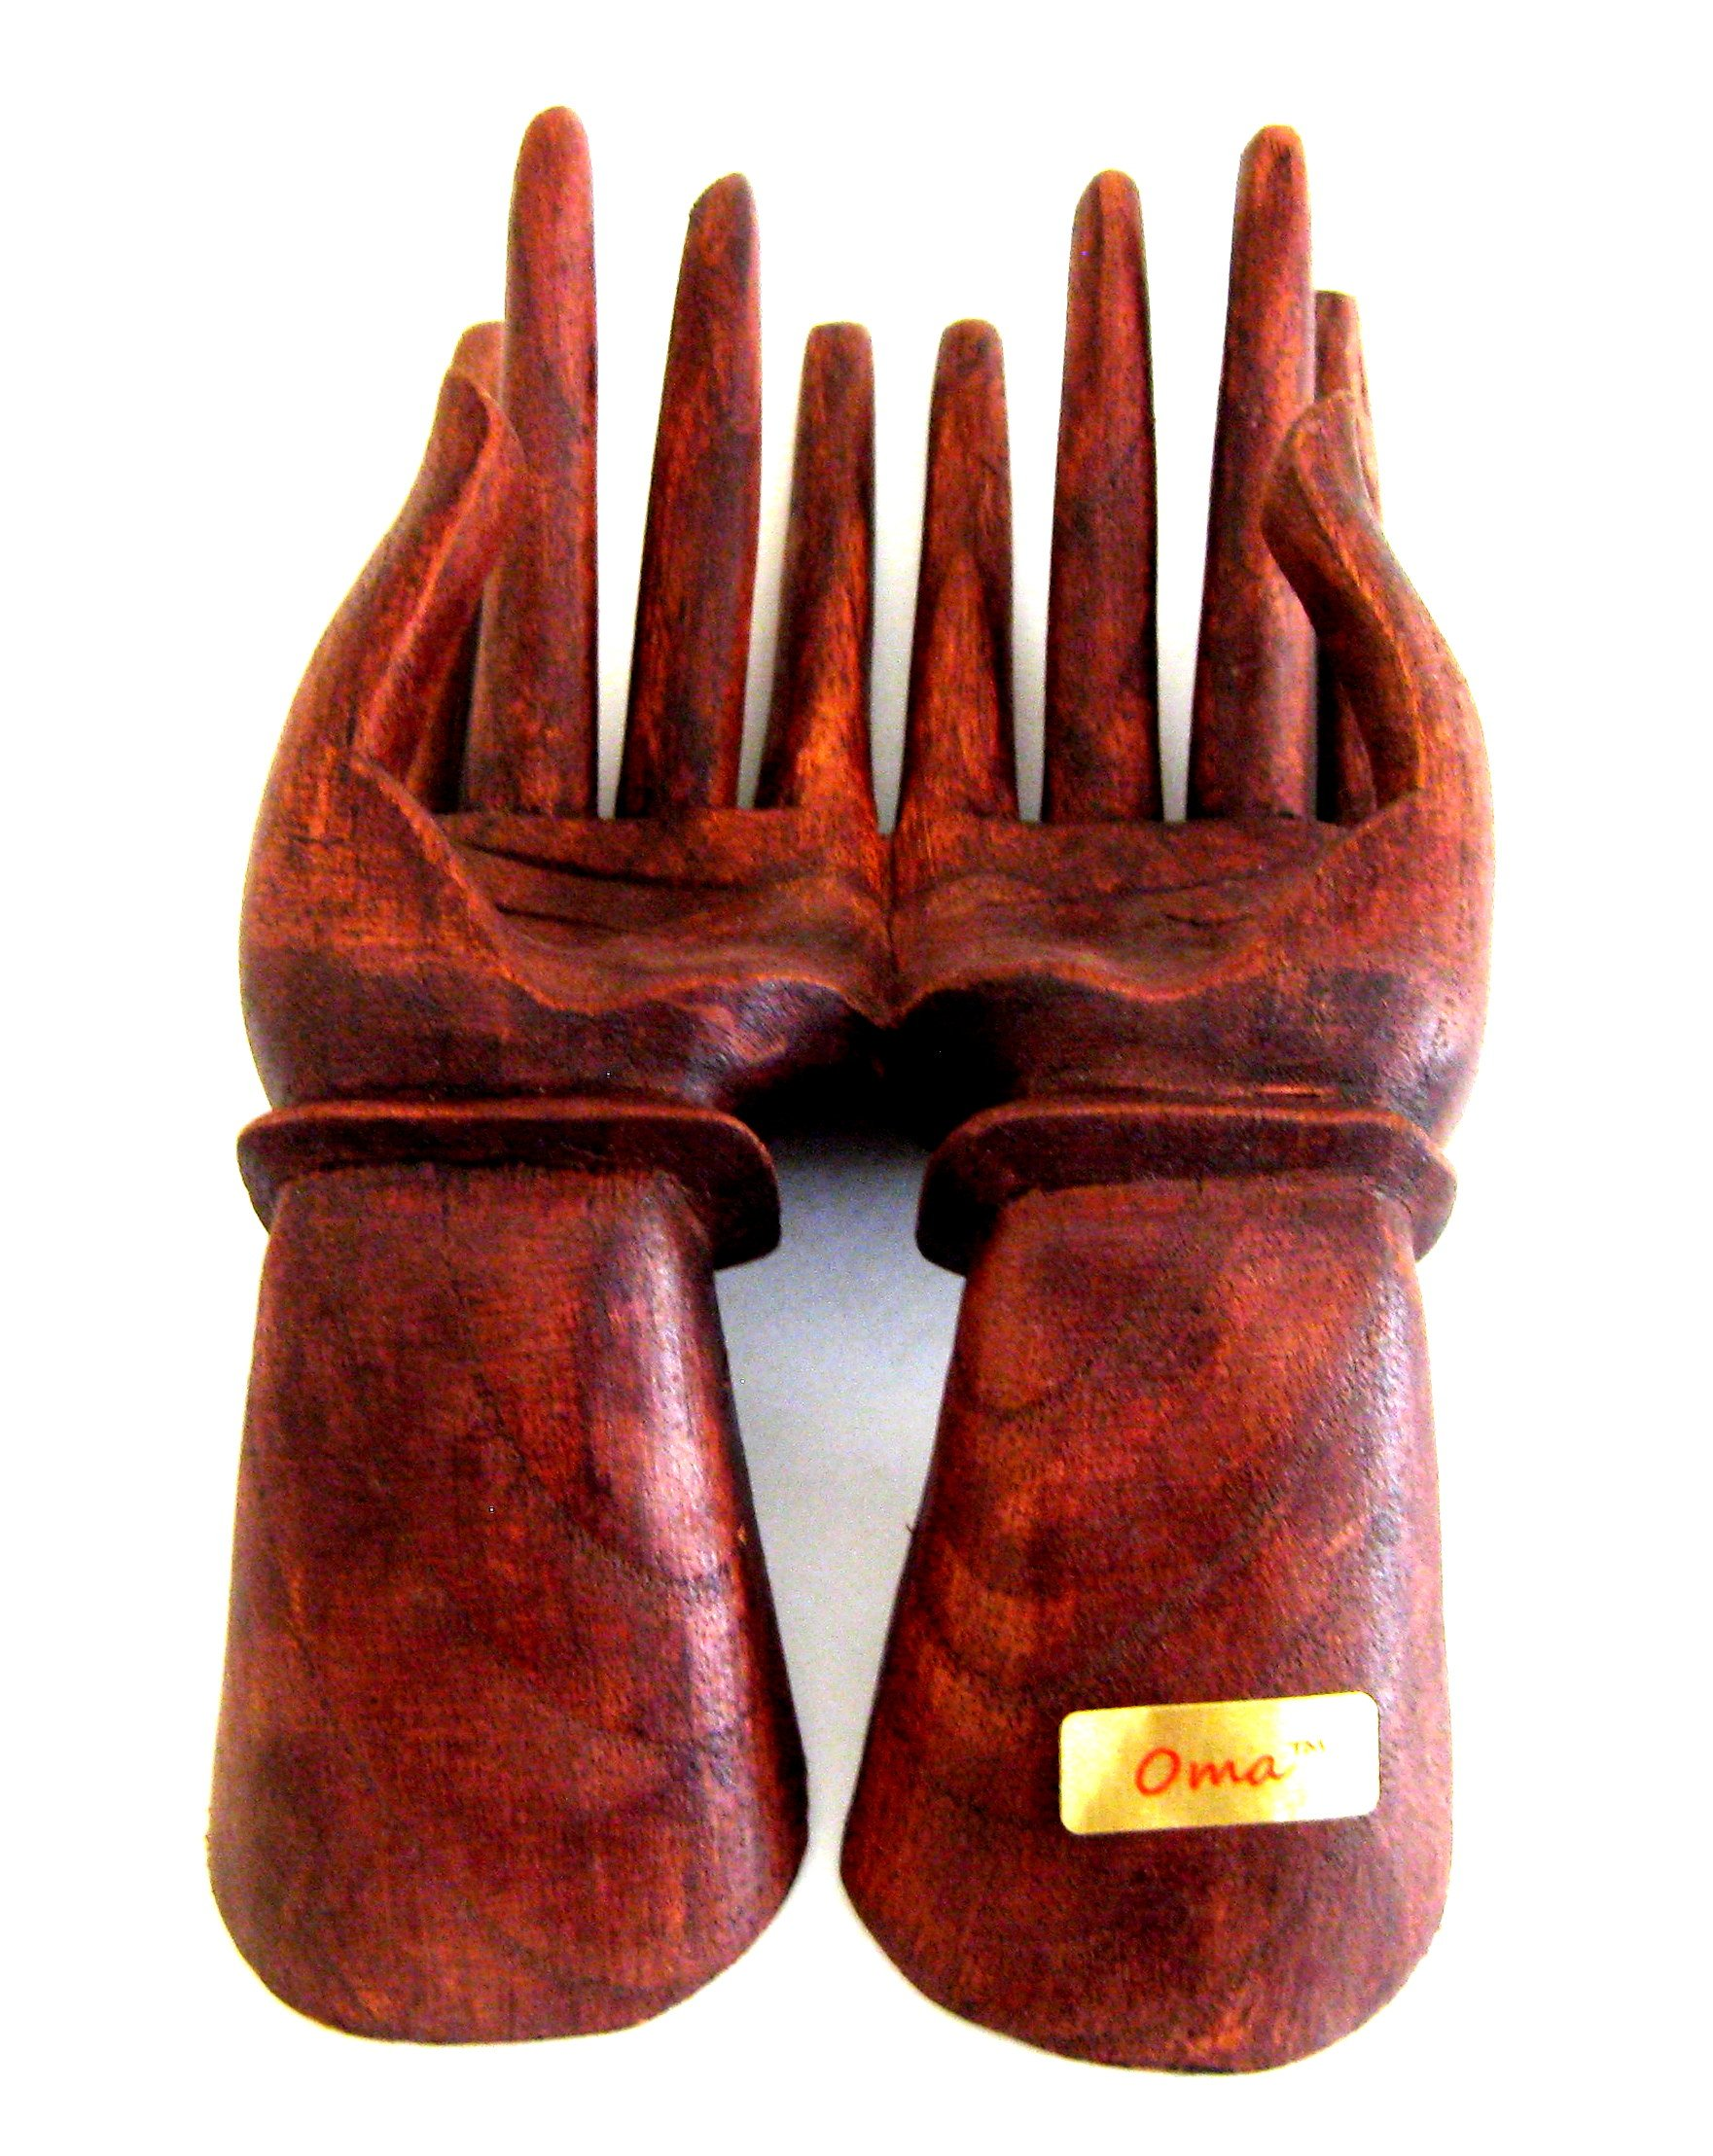 Praying Hands Wood Hand Shaped Statue Ring Jewelry Display Holder - OMA BRAND